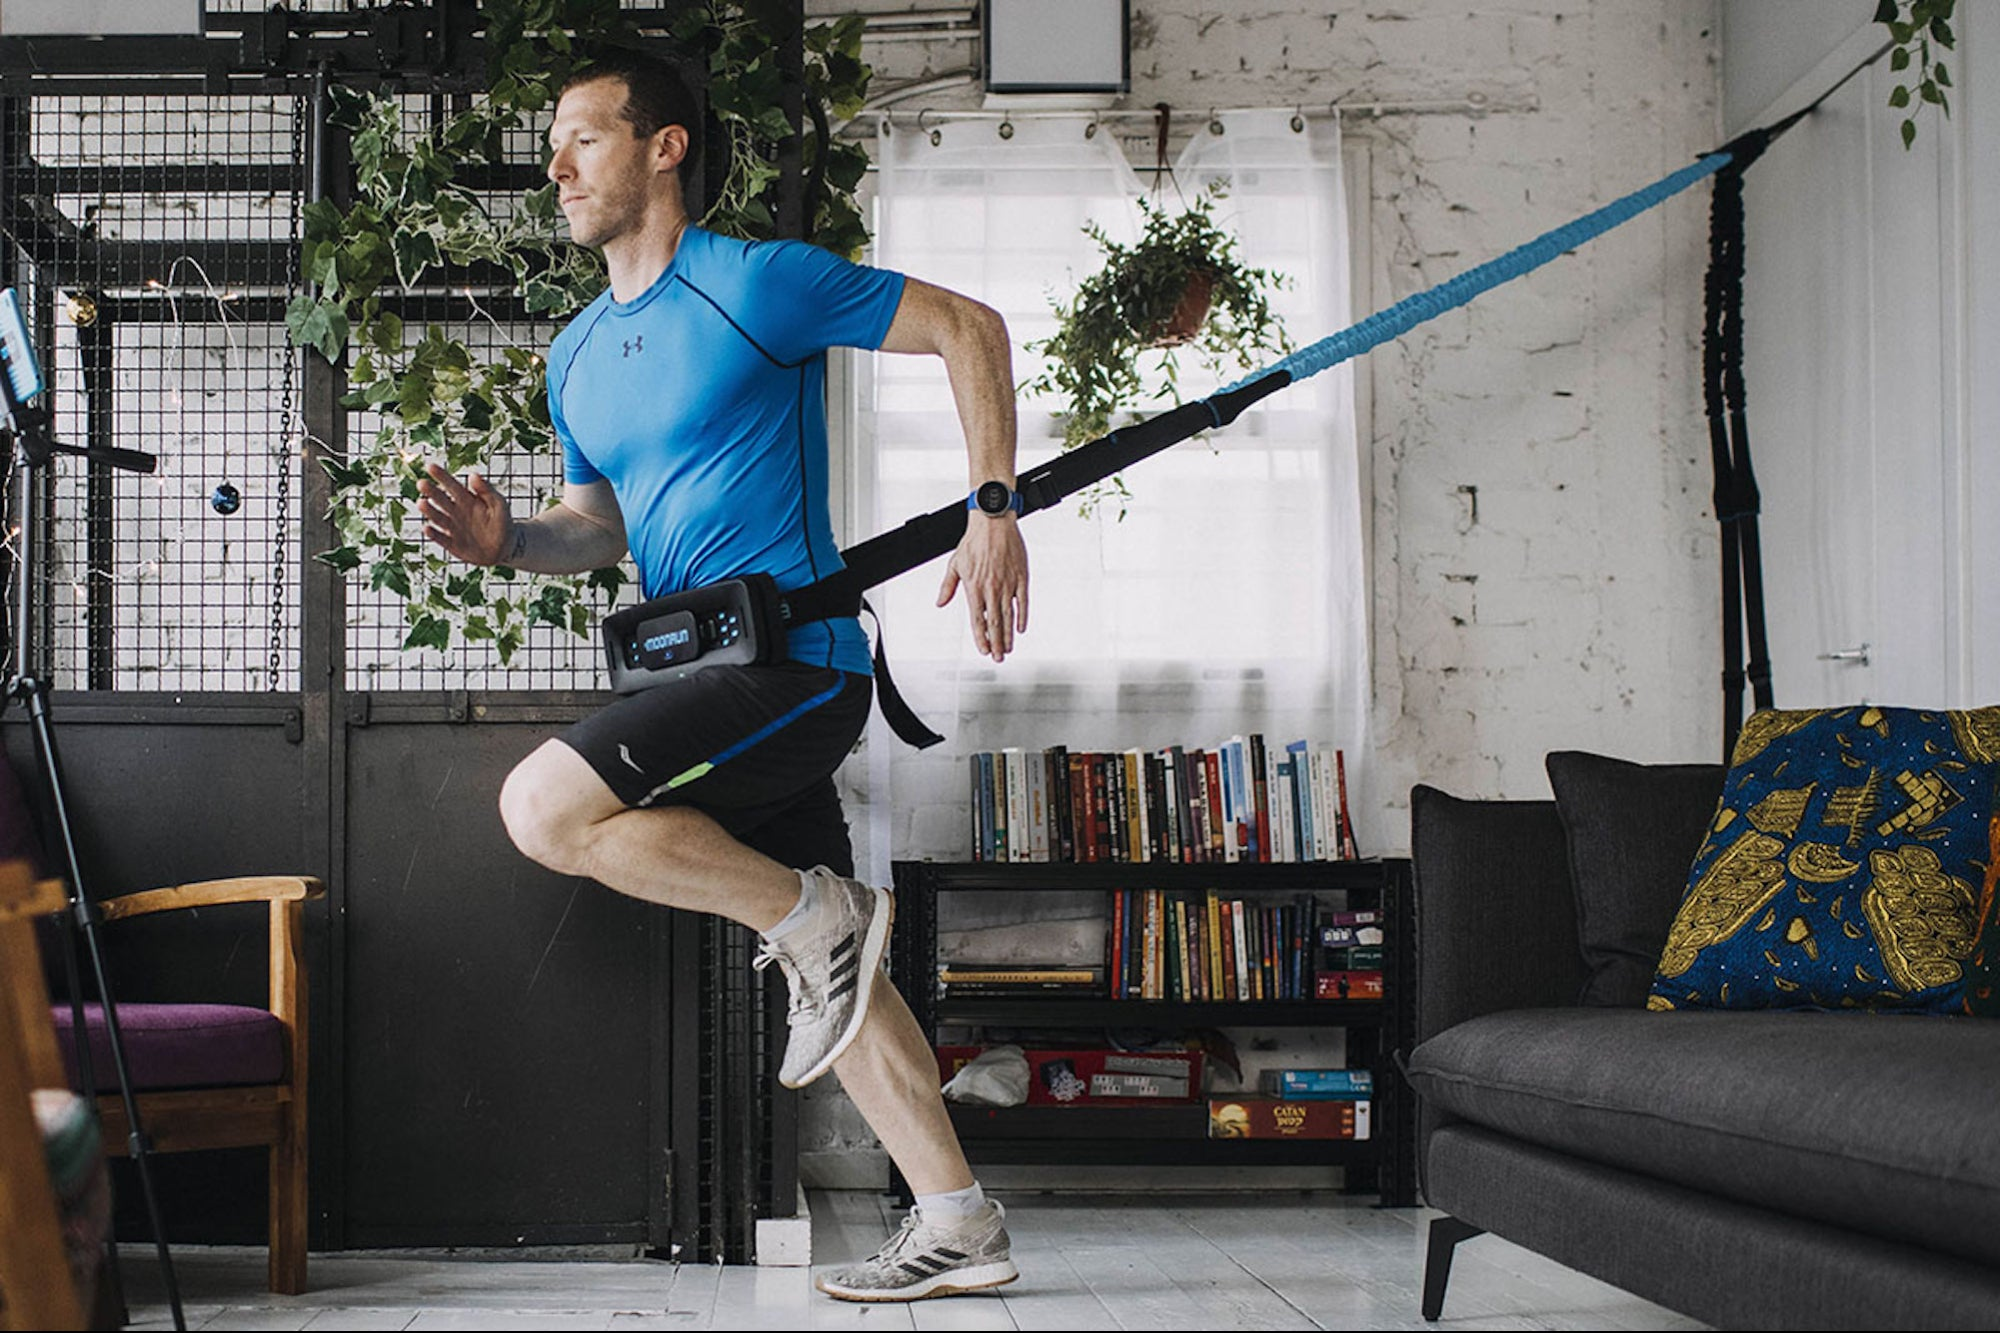 Why Splurge on Peloton? Instead, This Device Gives You a Full Cardio Workout in Your Living Room.